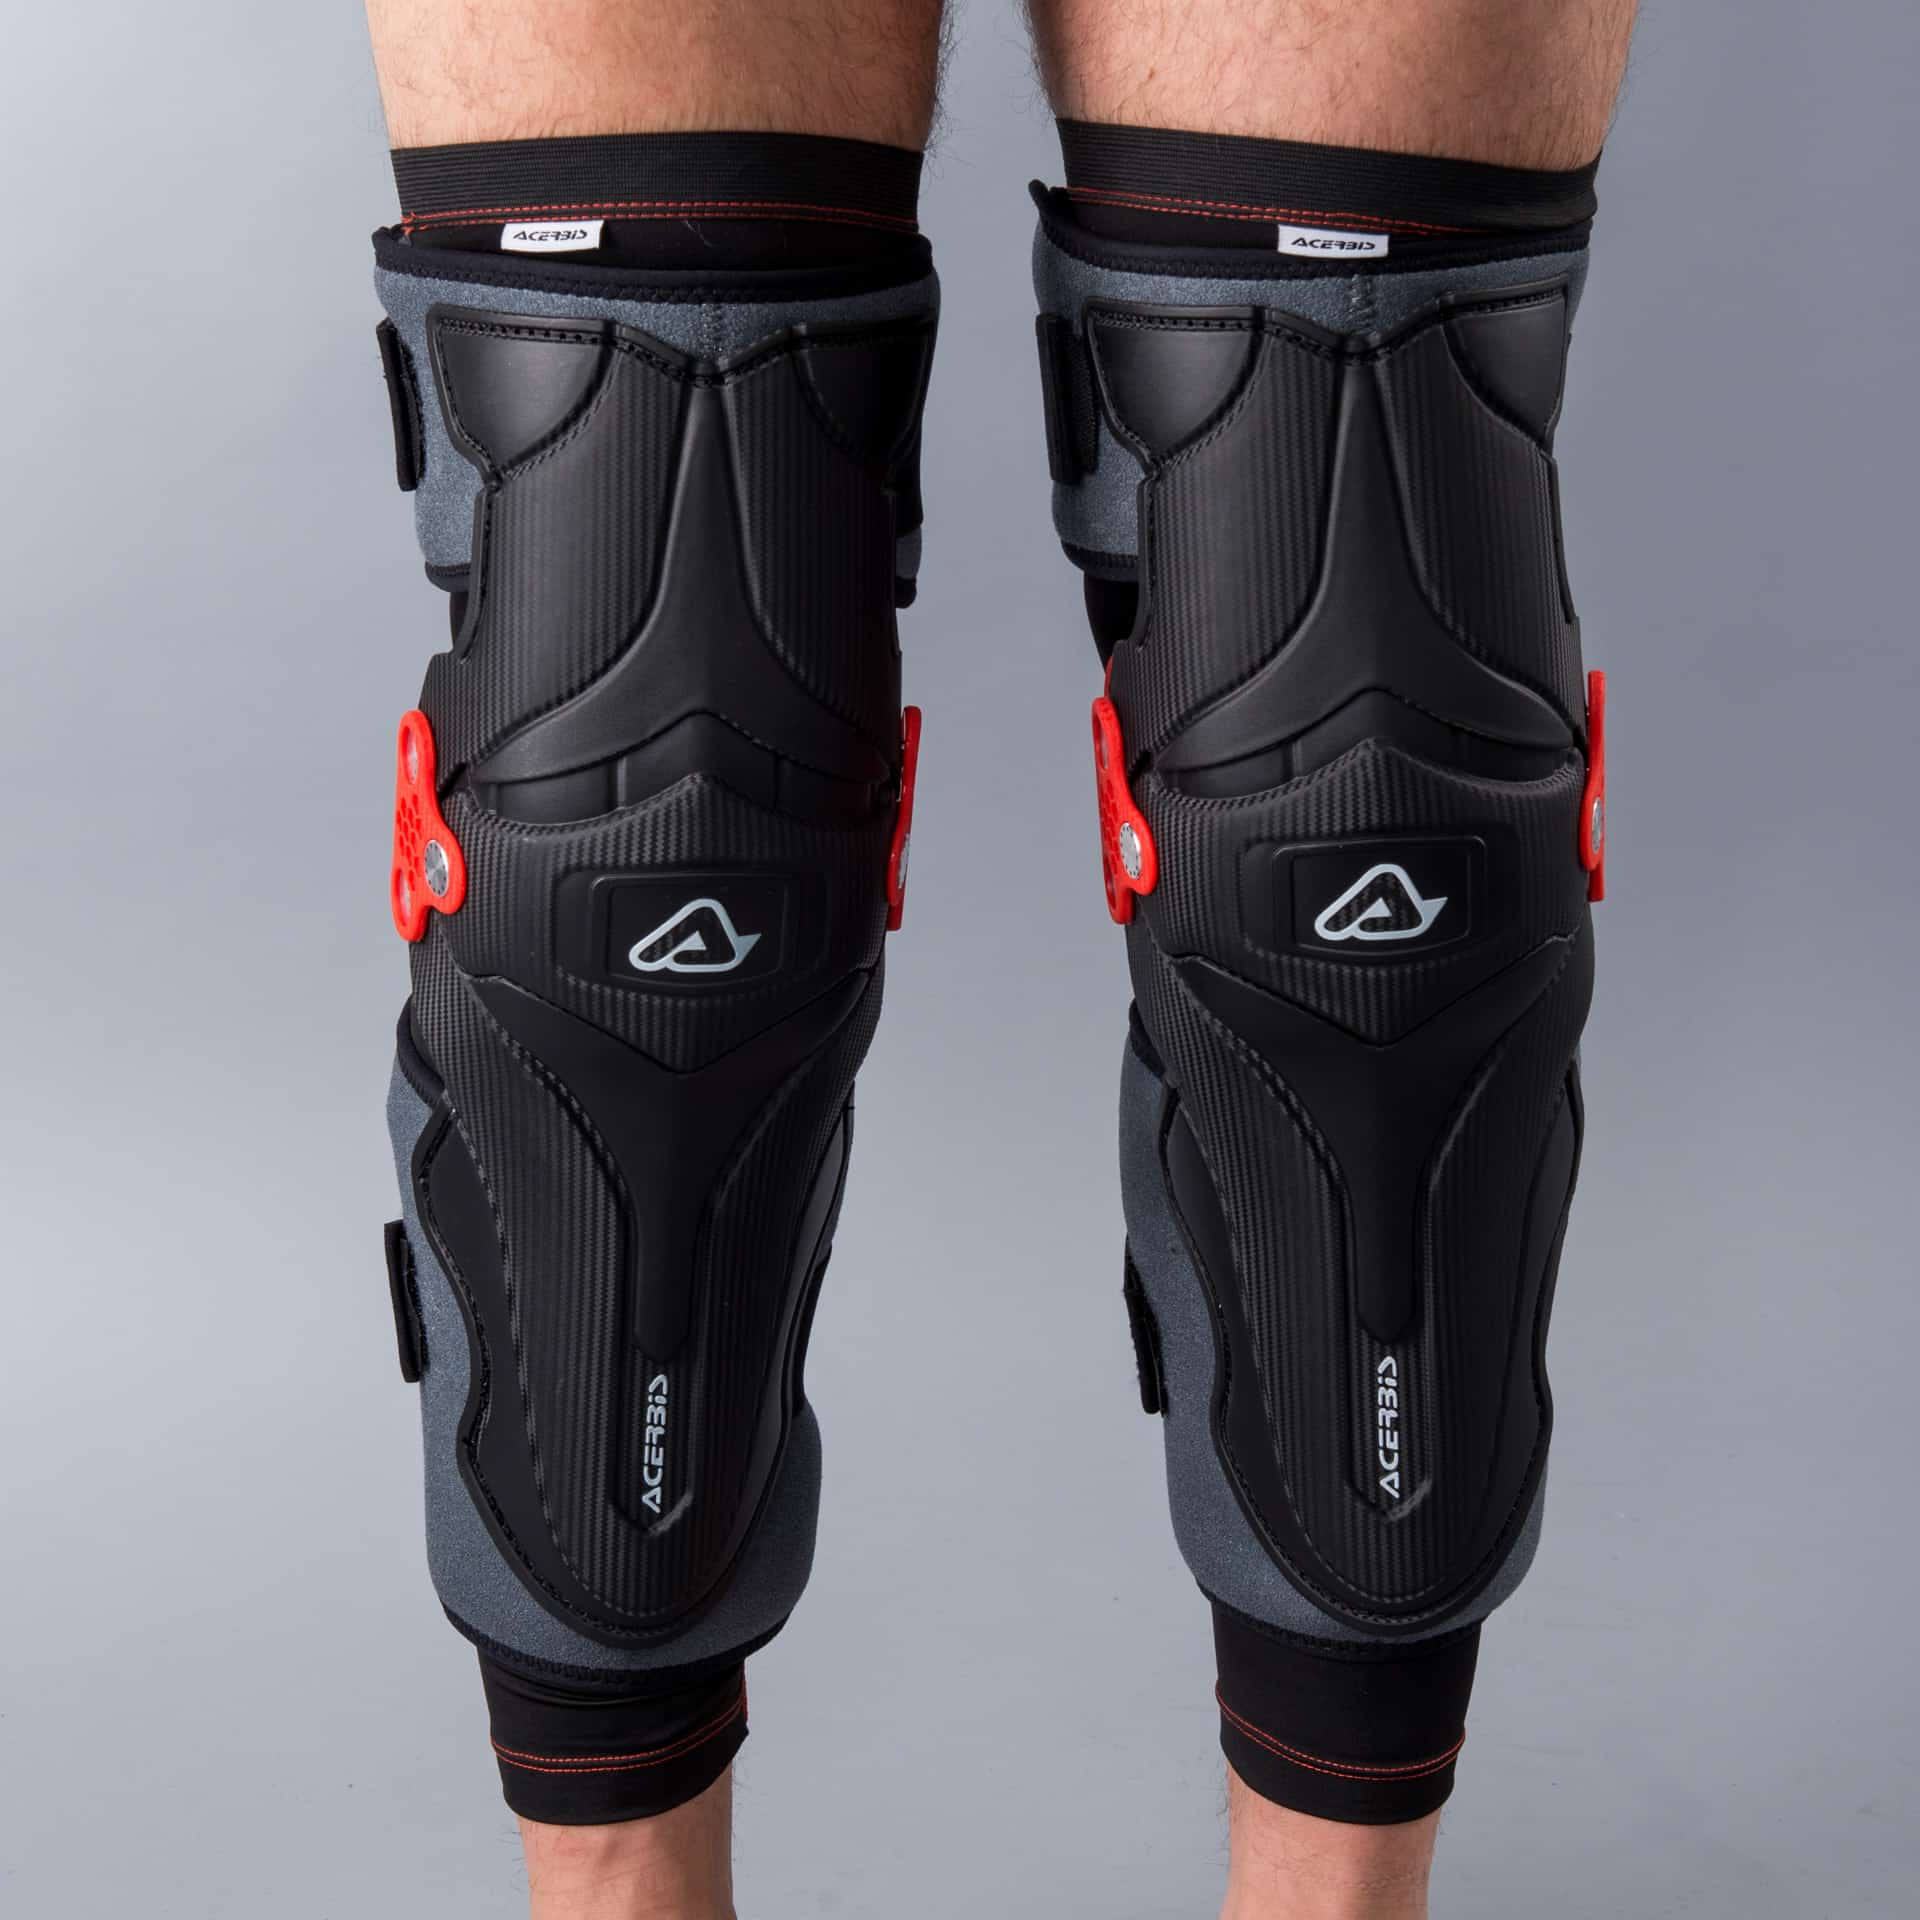 Gear Review: Acerbis X-Strong Knee Guard